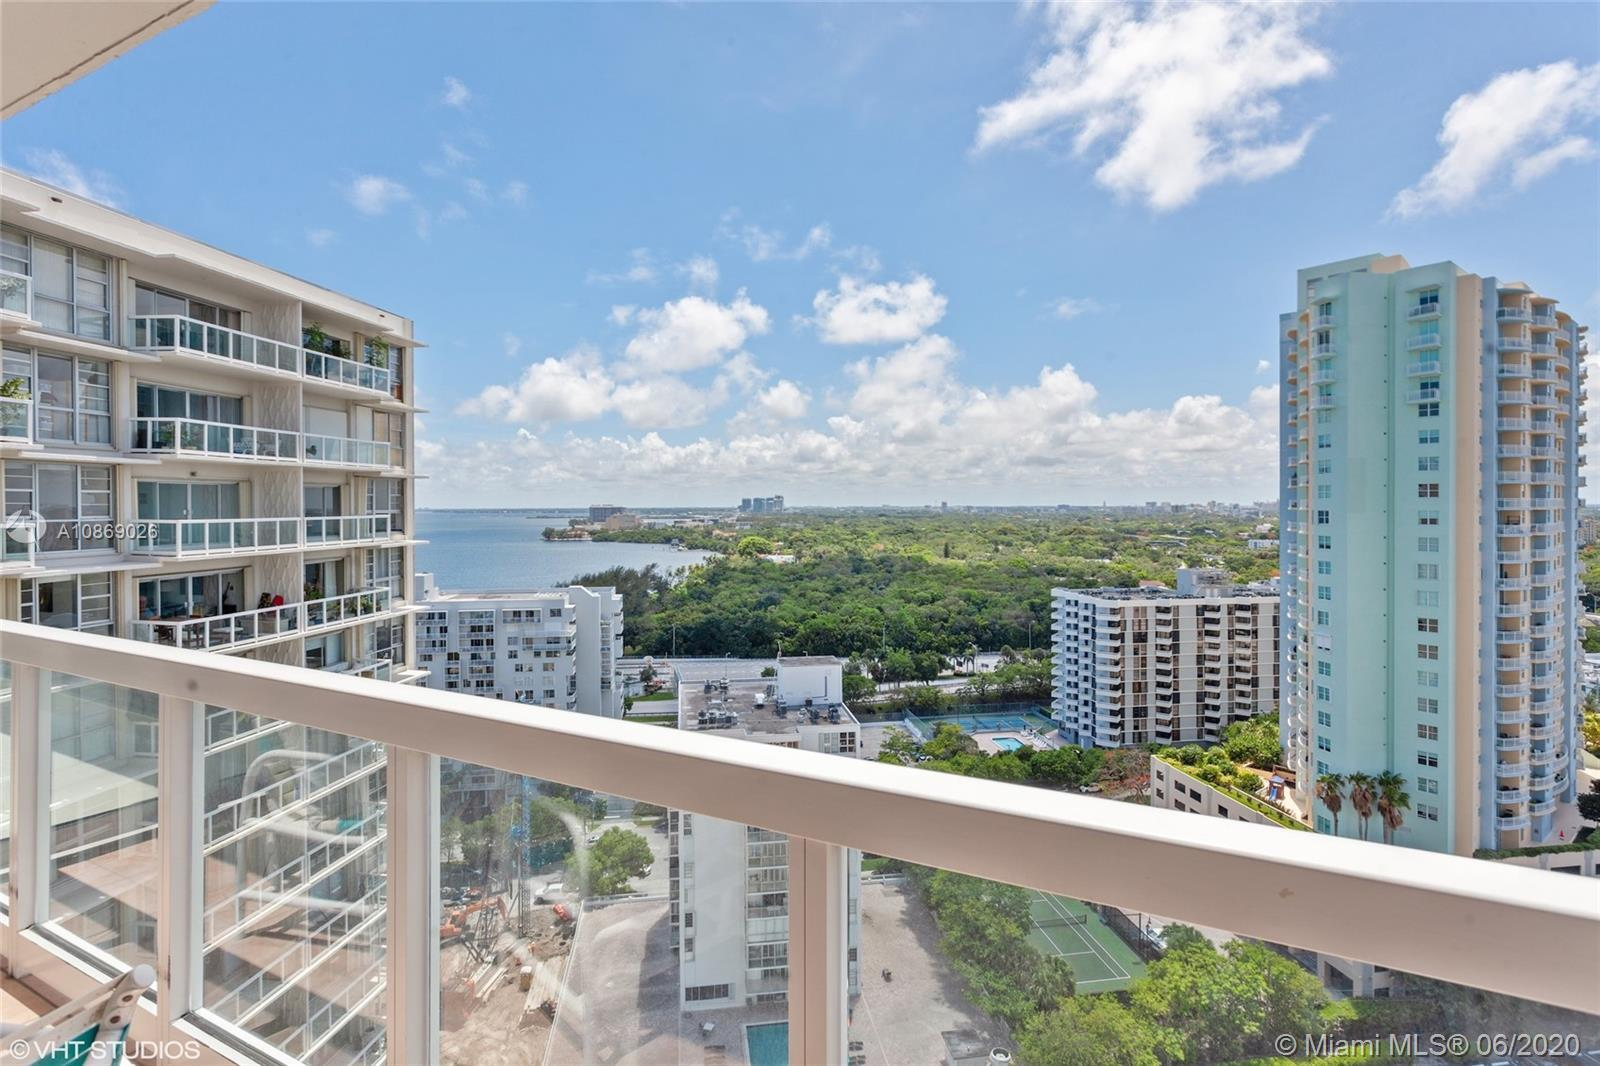 Stunning 20th floor, high level residence featuring endless sweeping awe-inspiring Biscayne Bay and